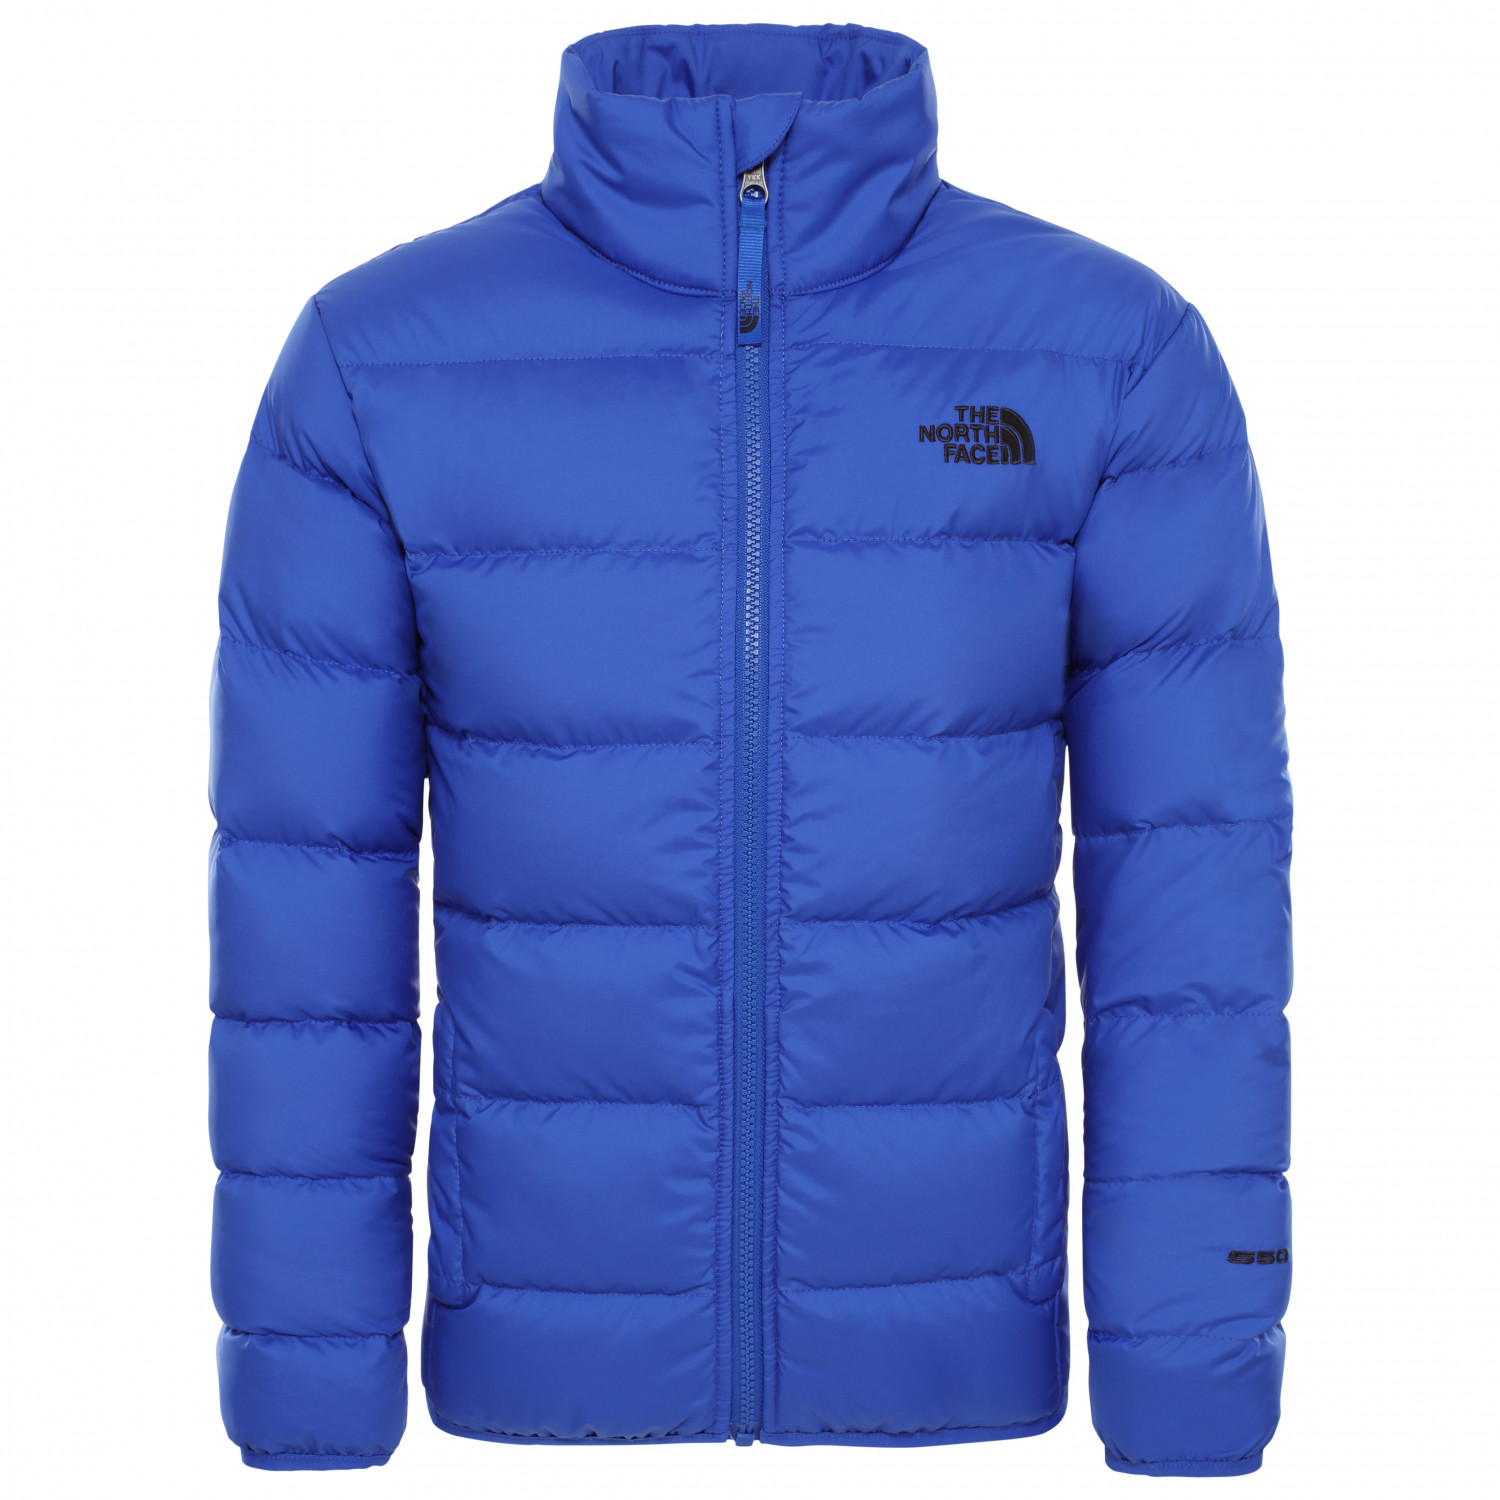 online retailer 7fd22 c527f The North Face - Boy's Andes Jacket - Daunenjacke - TNF Blue   XS